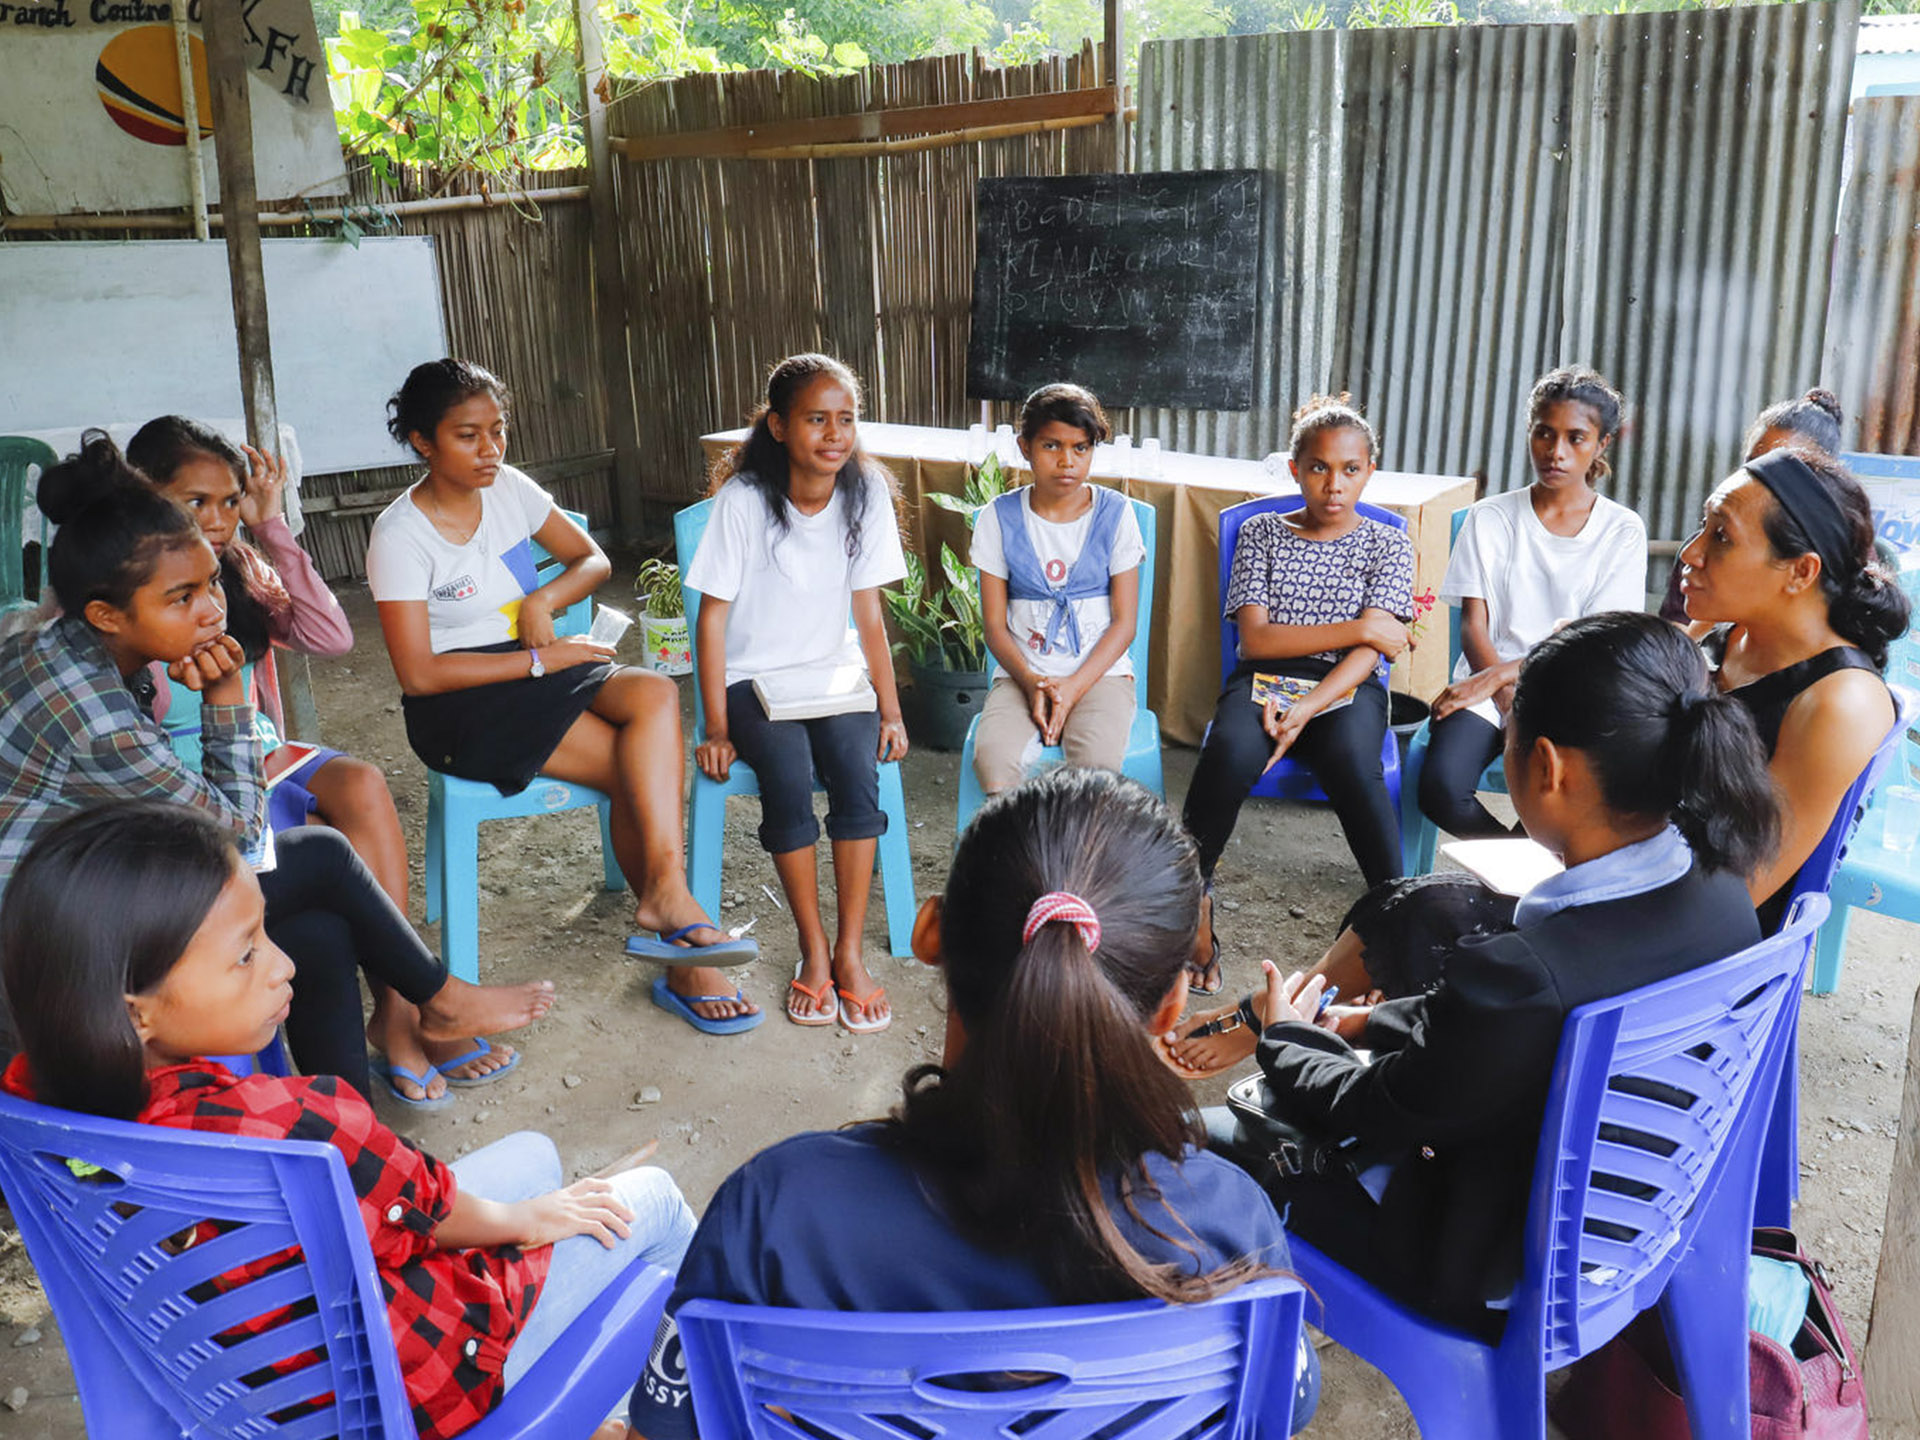 Youth activists are calling on you to take action against SRGBV